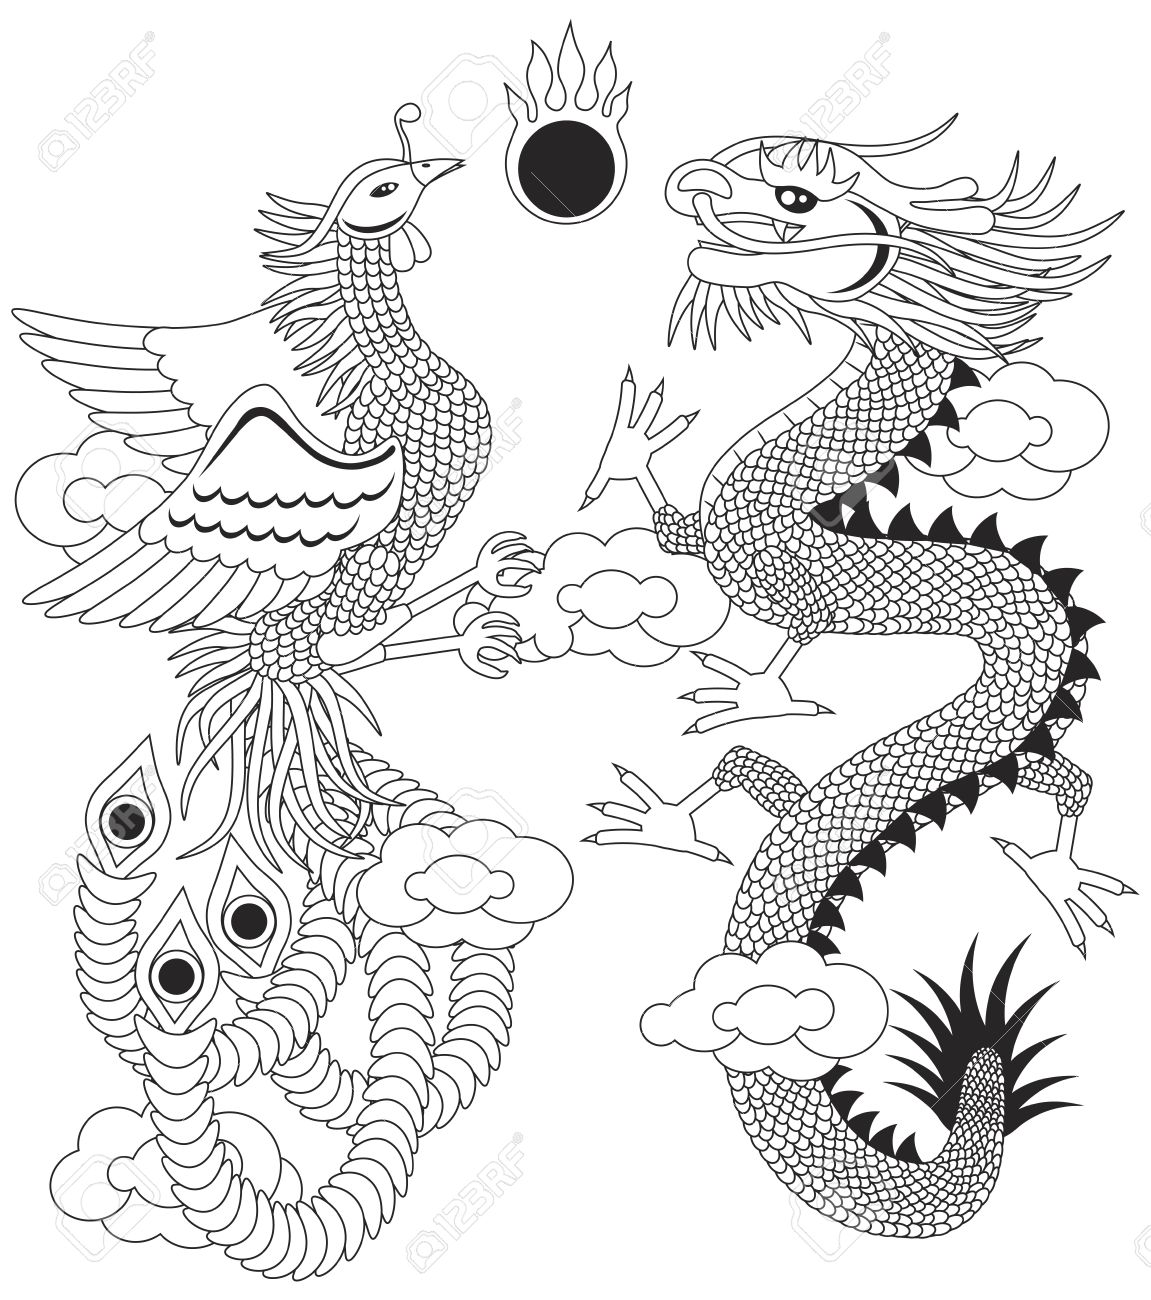 Dragon and Phoenix Symbols for Chinese Wedding with Flaming Ball Clouds Outline Illustration Isolated on White Background Stock Vector - 16987726